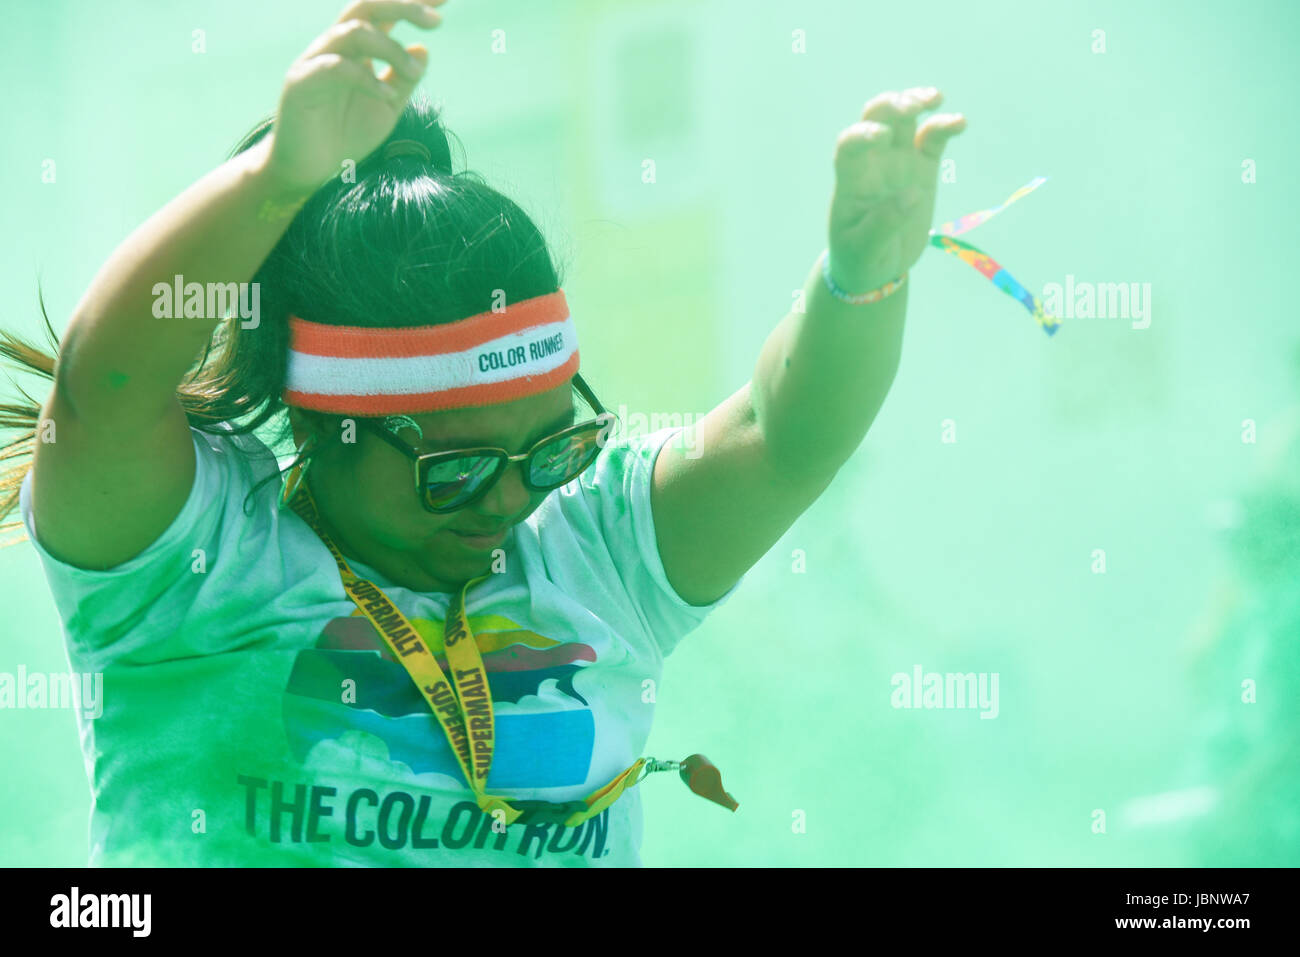 color-run-london-at-wembley-park-girl-prayed-showered-with-coloured-JBNWA7.jpg